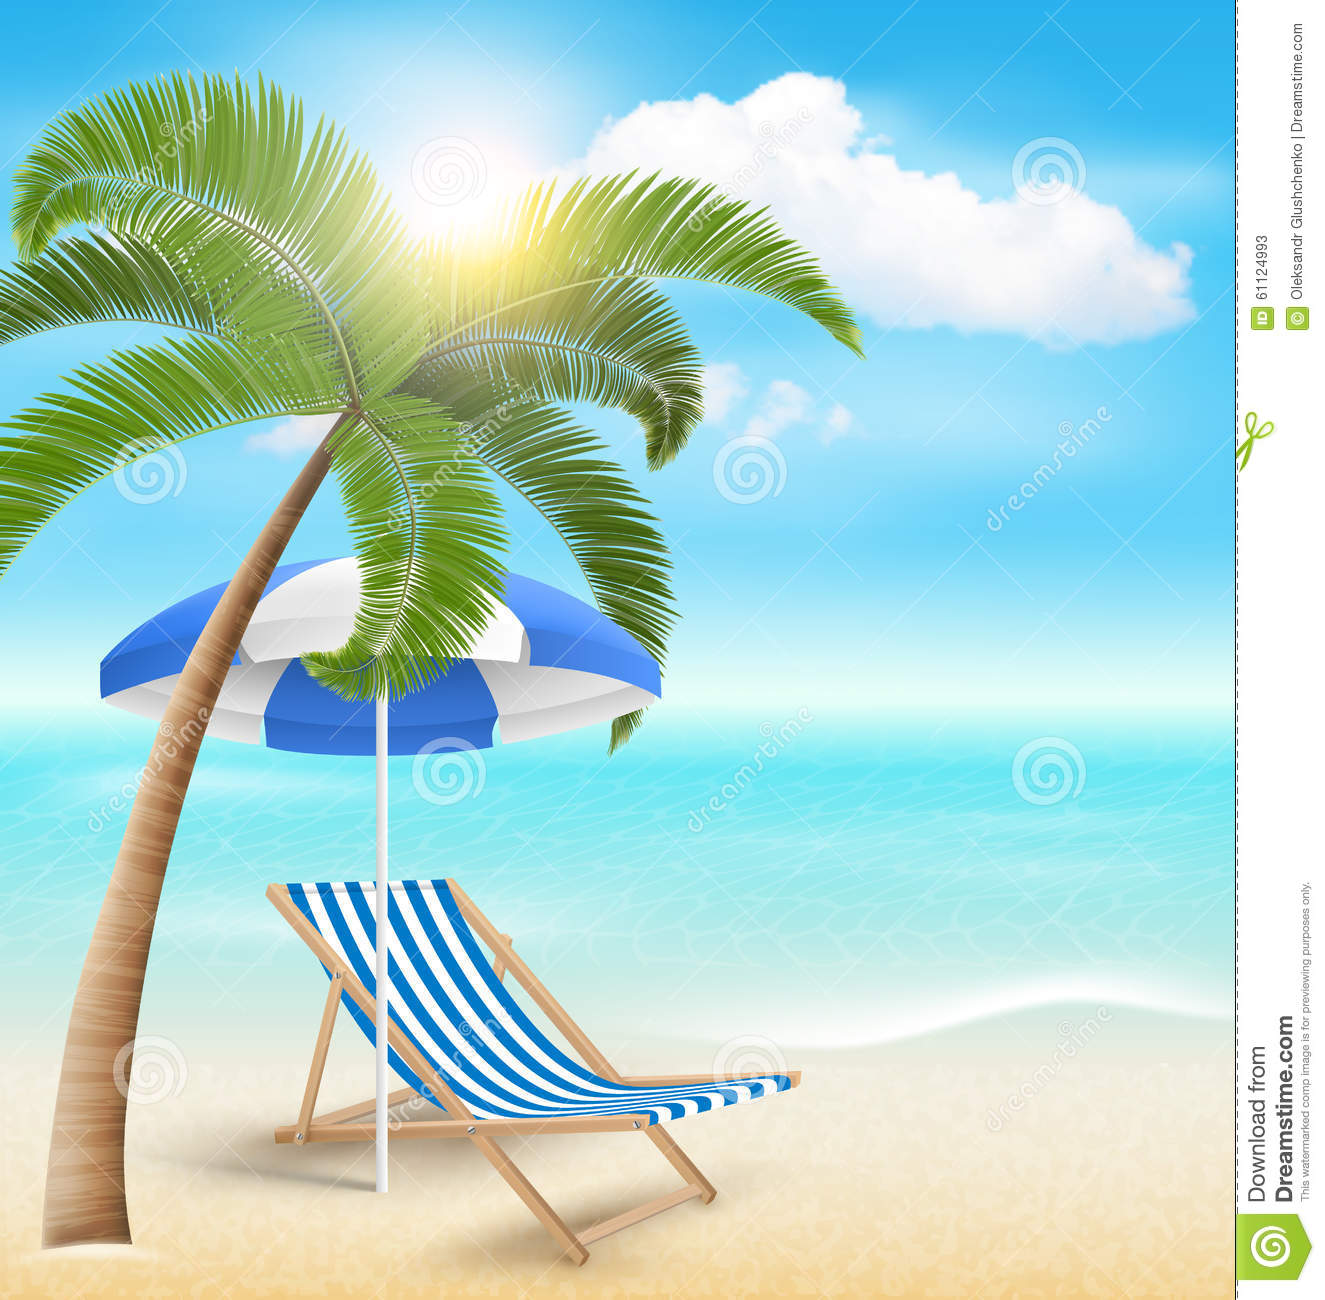 Beach With Palm Clouds Sun Beach Umbrella And Beach Chair